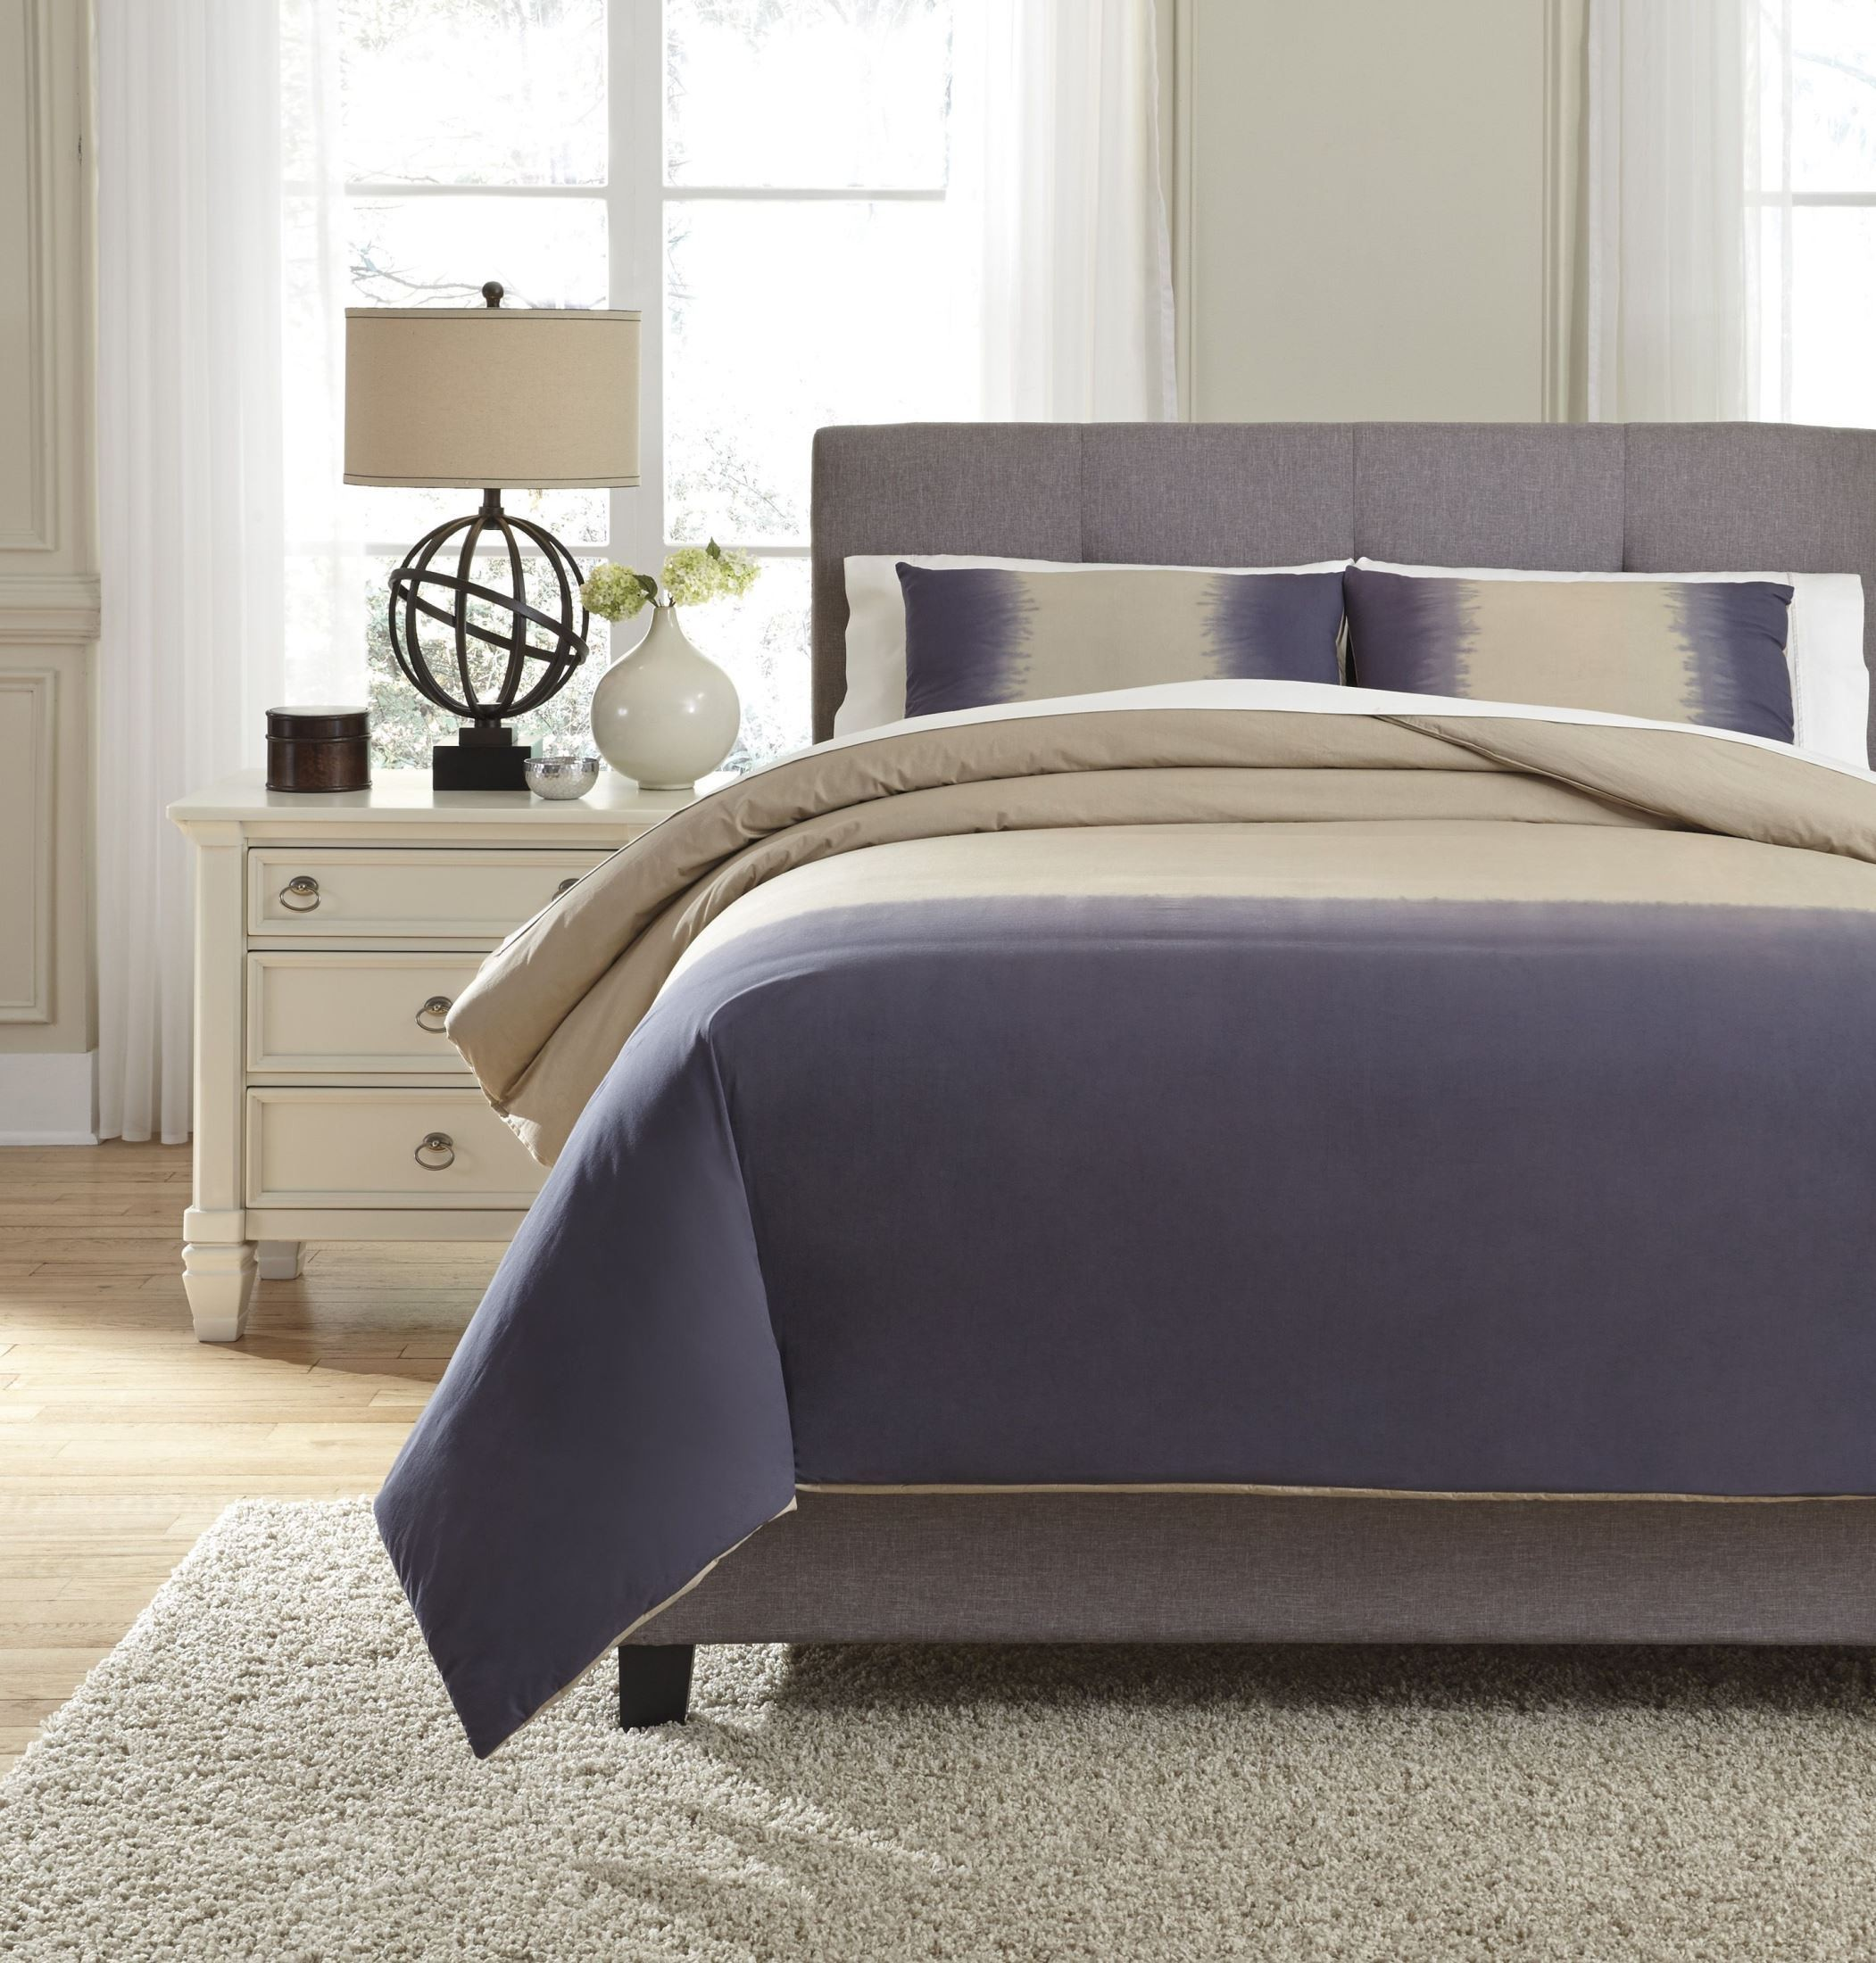 Brandon Indigo Queen Comforter Set, Q404003Q, Ashley